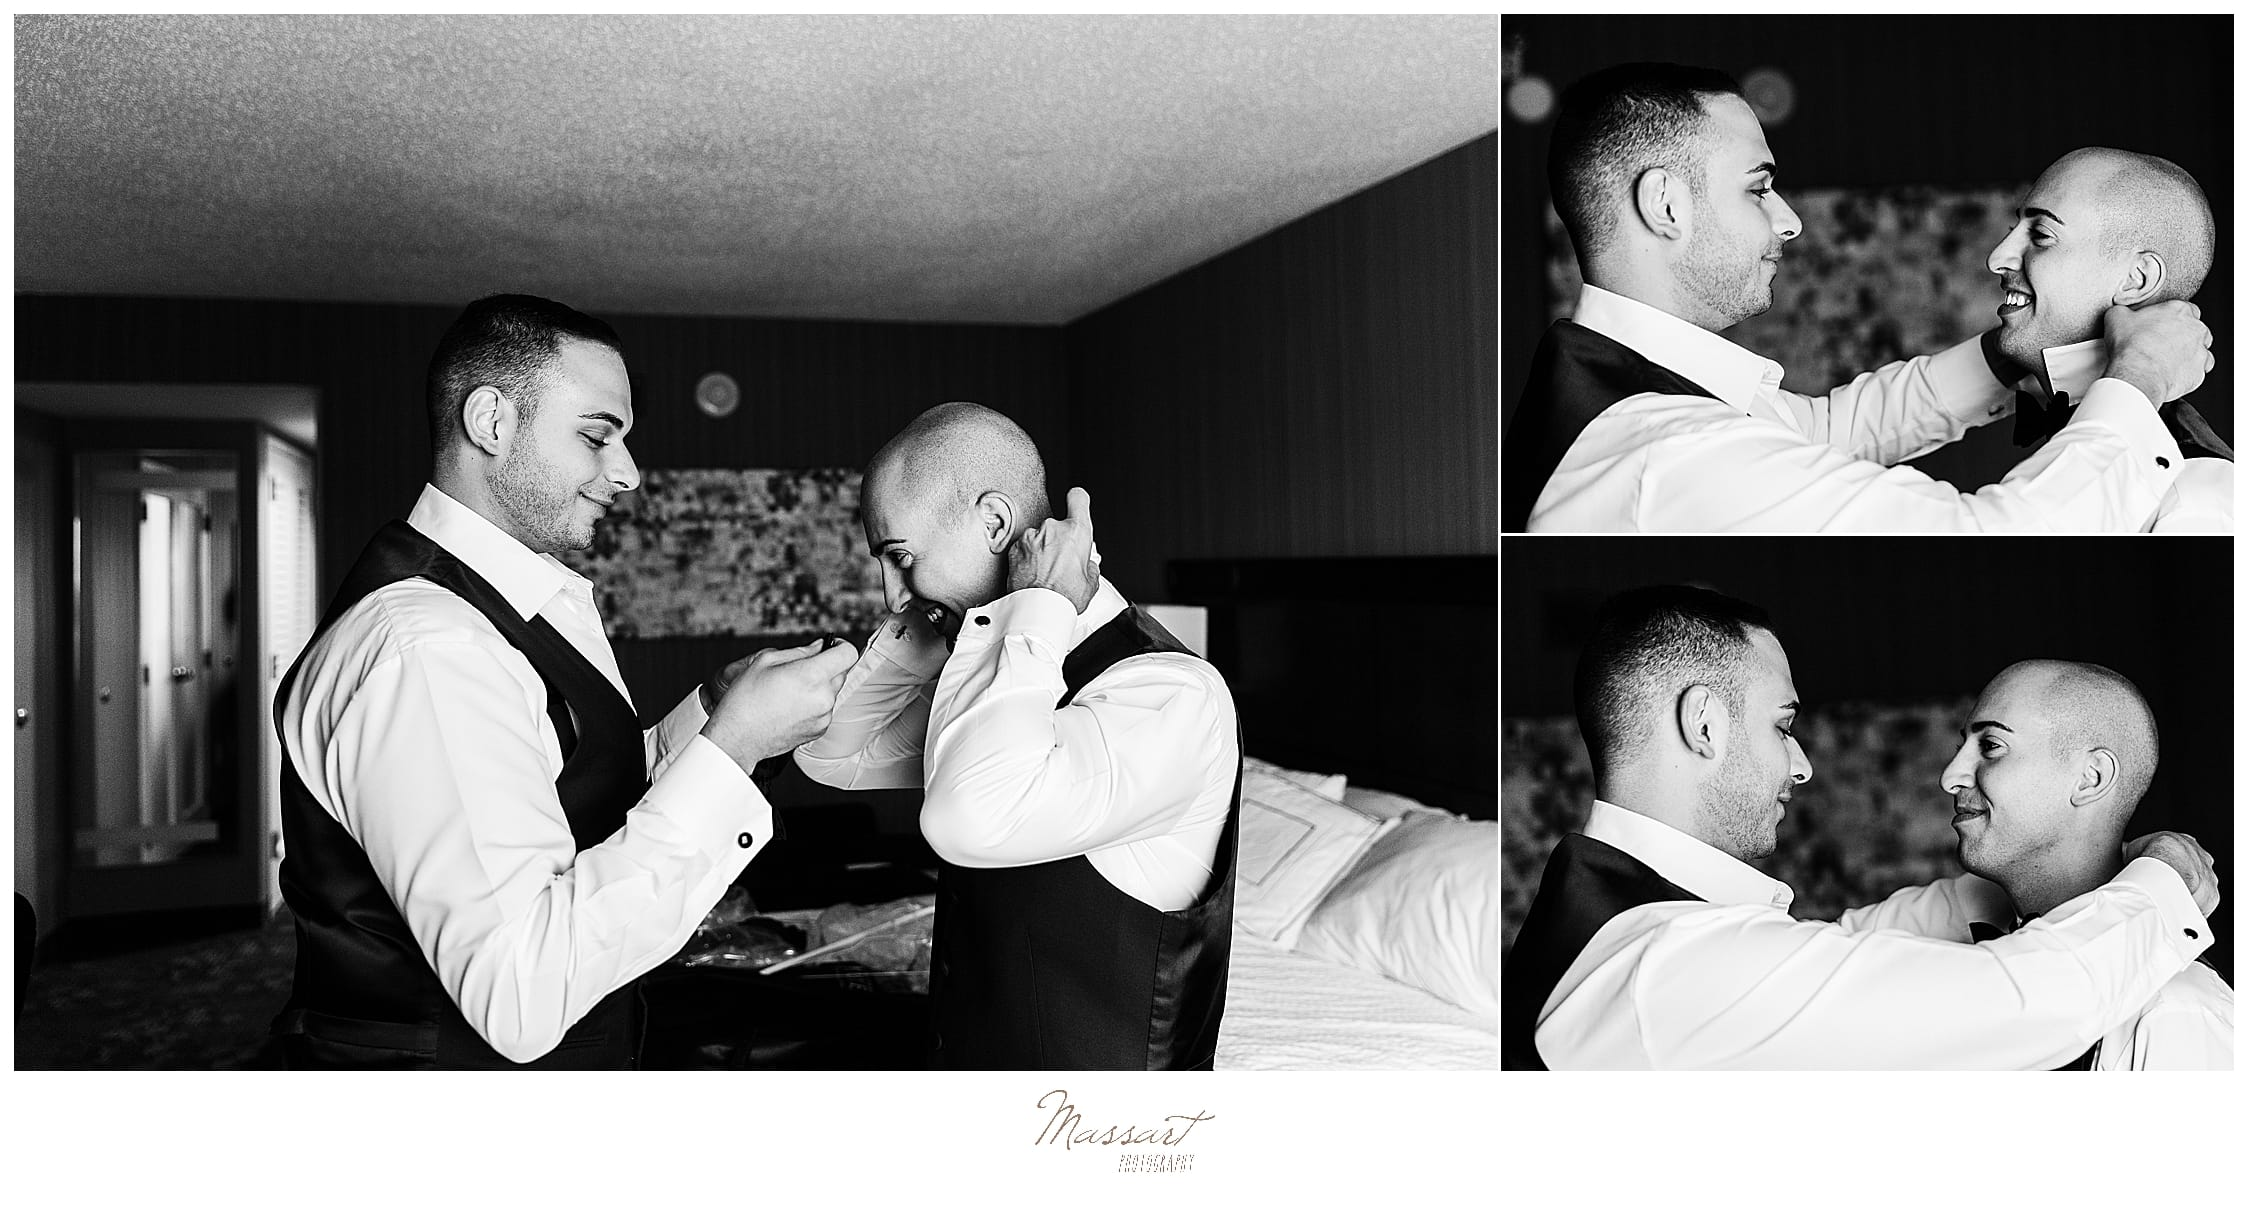 grooms prepare for Palace Theater wedding day photographed by wedding photographers Massart Photography